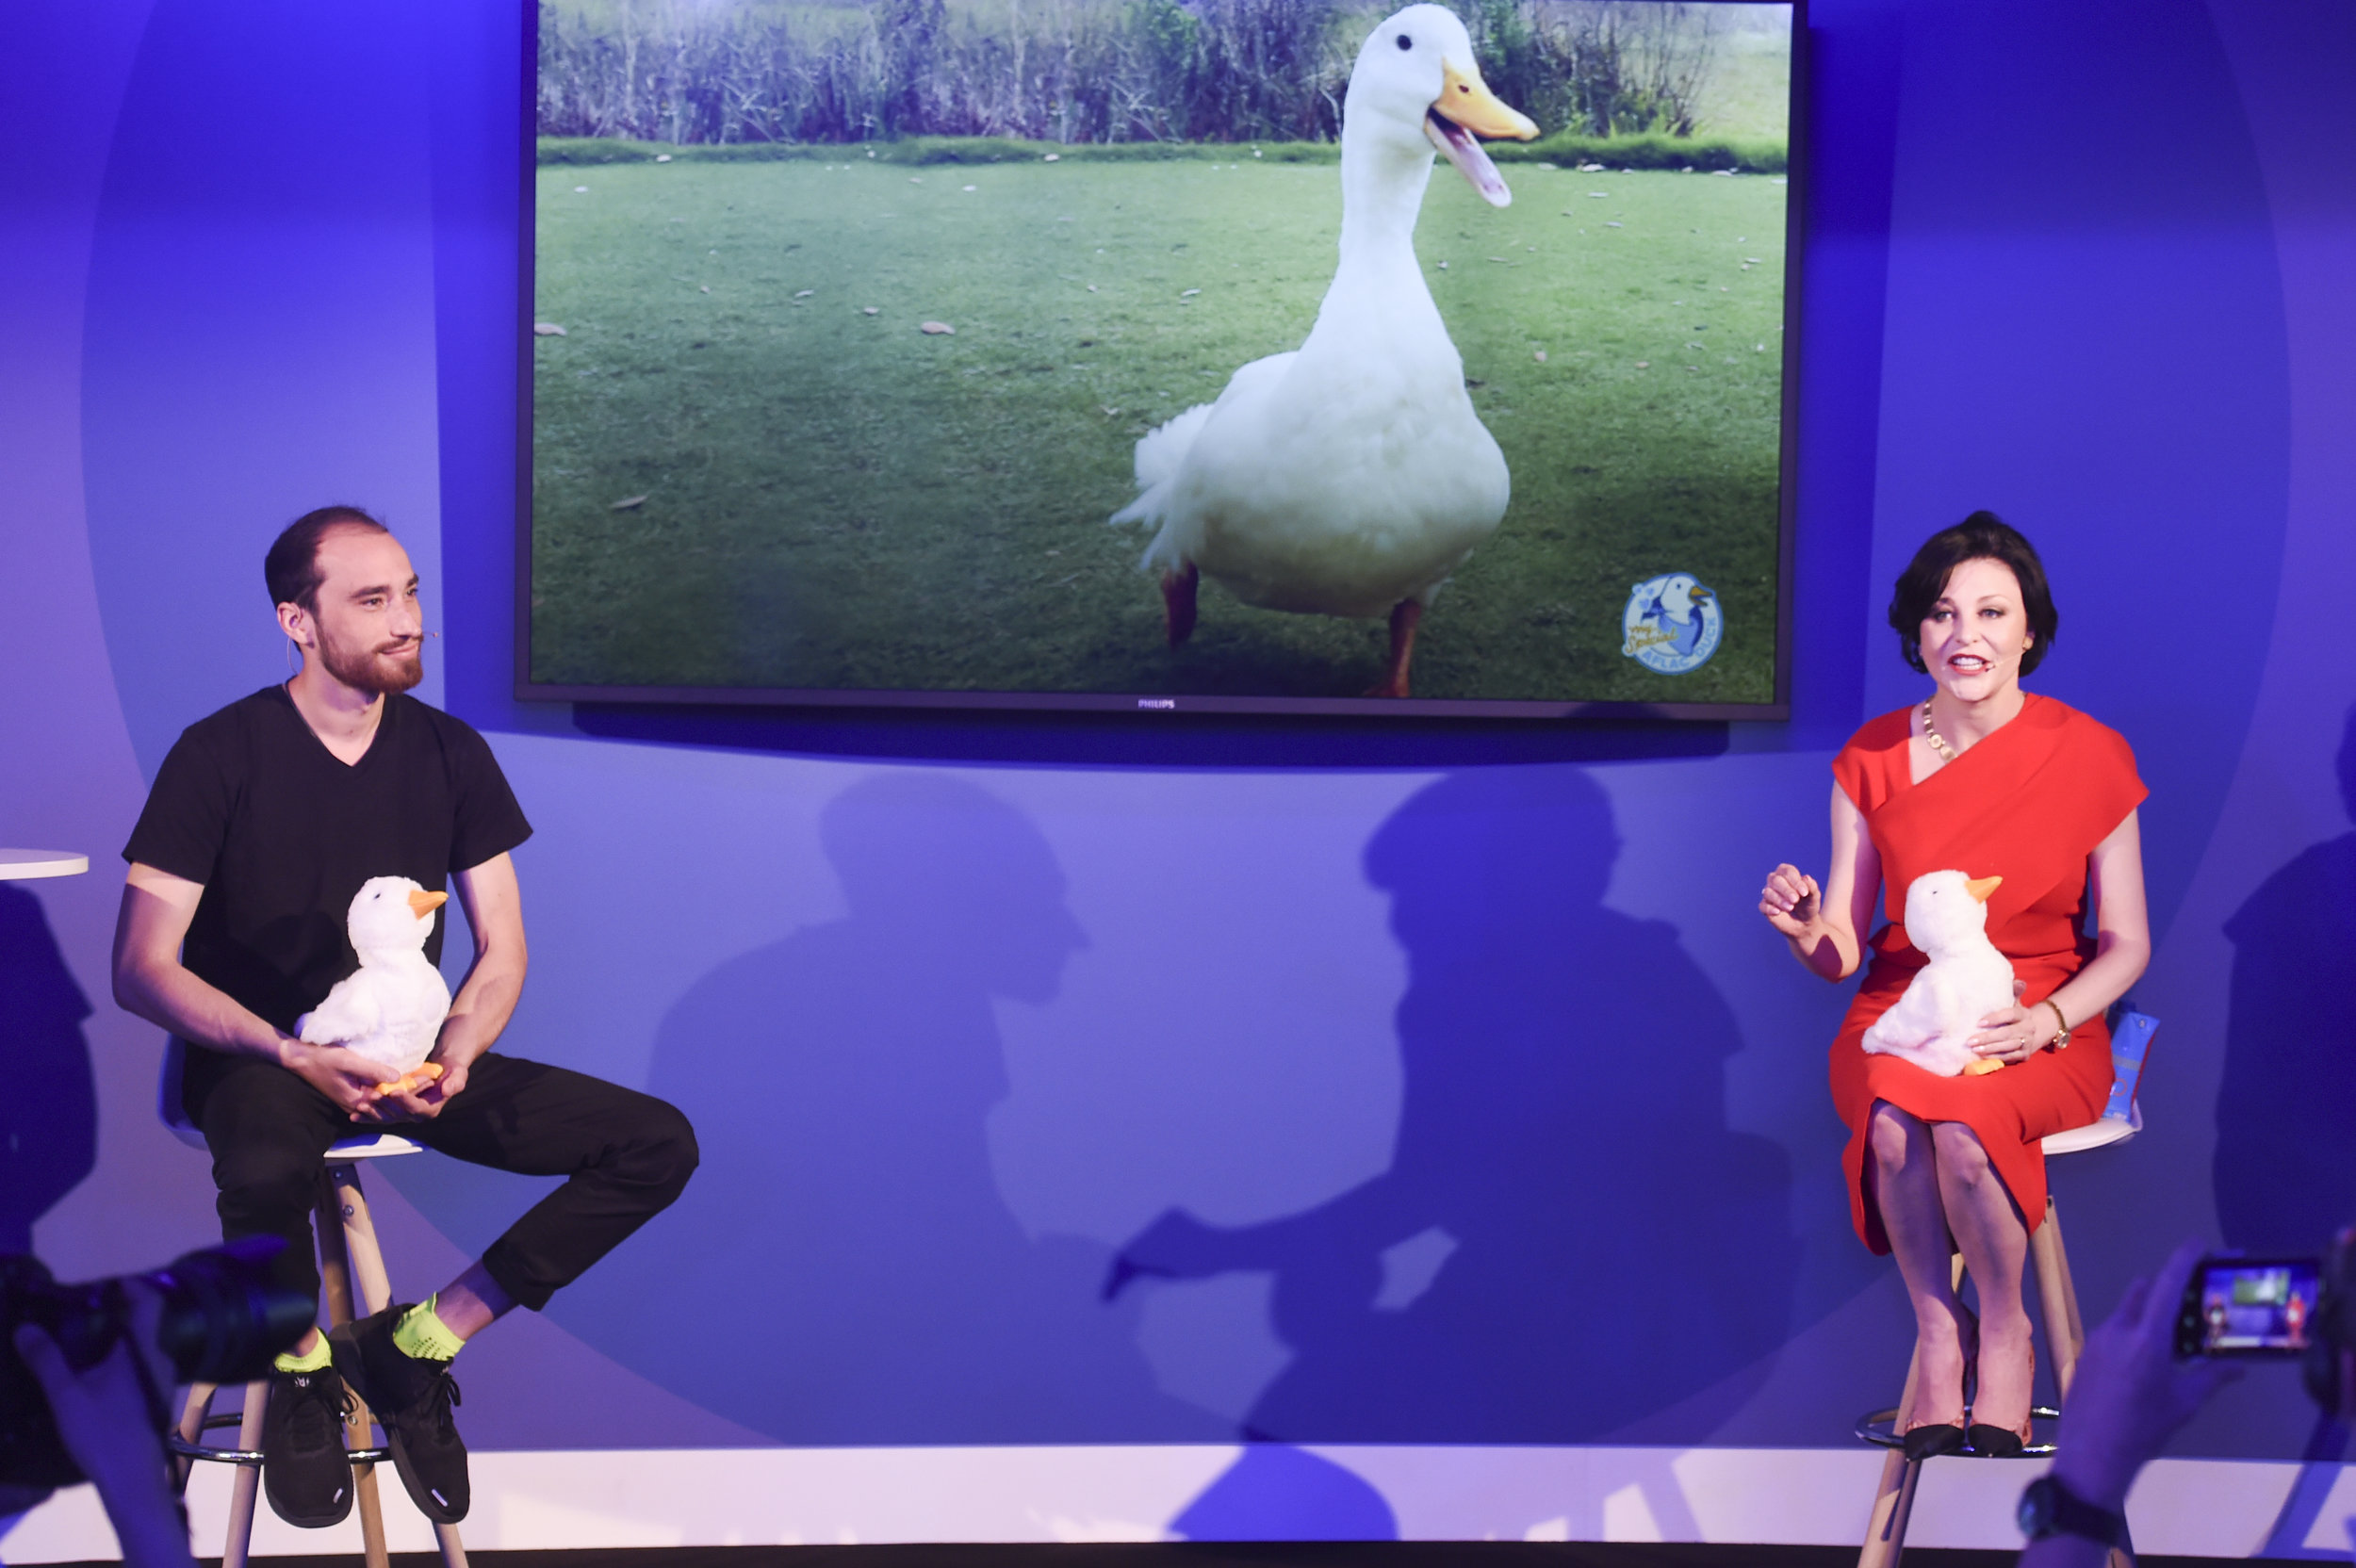 Aaron Horowitz of Sproutel (left) and Aflac's Catherine Hernandez-Blades with the ducks